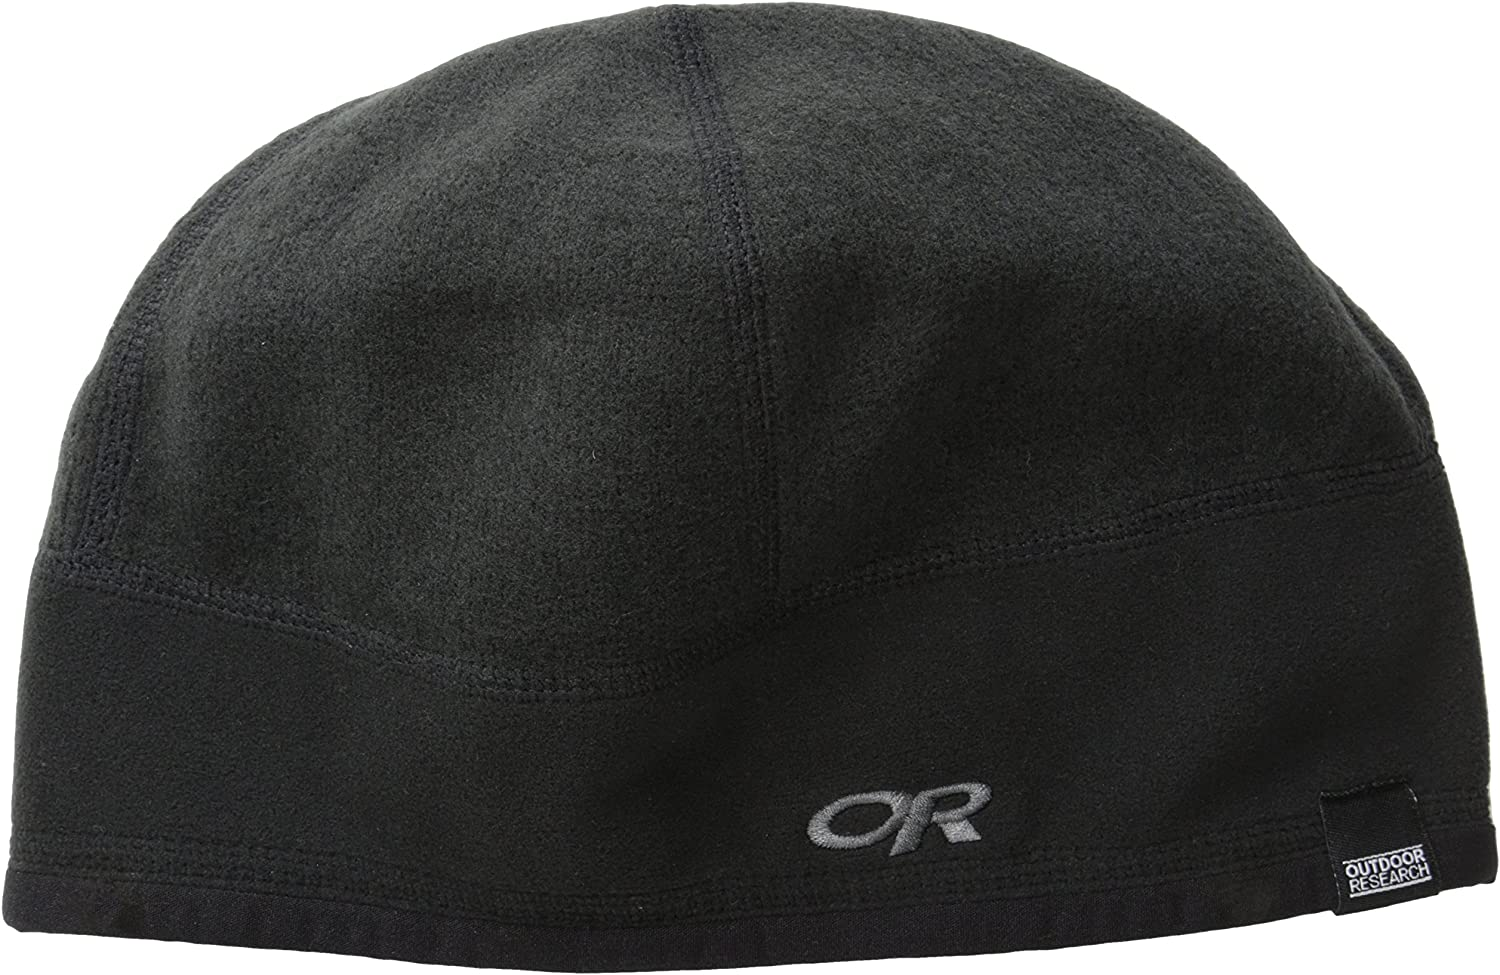 Outdoor Research Endeavor Hat Max 61% OFF Department store